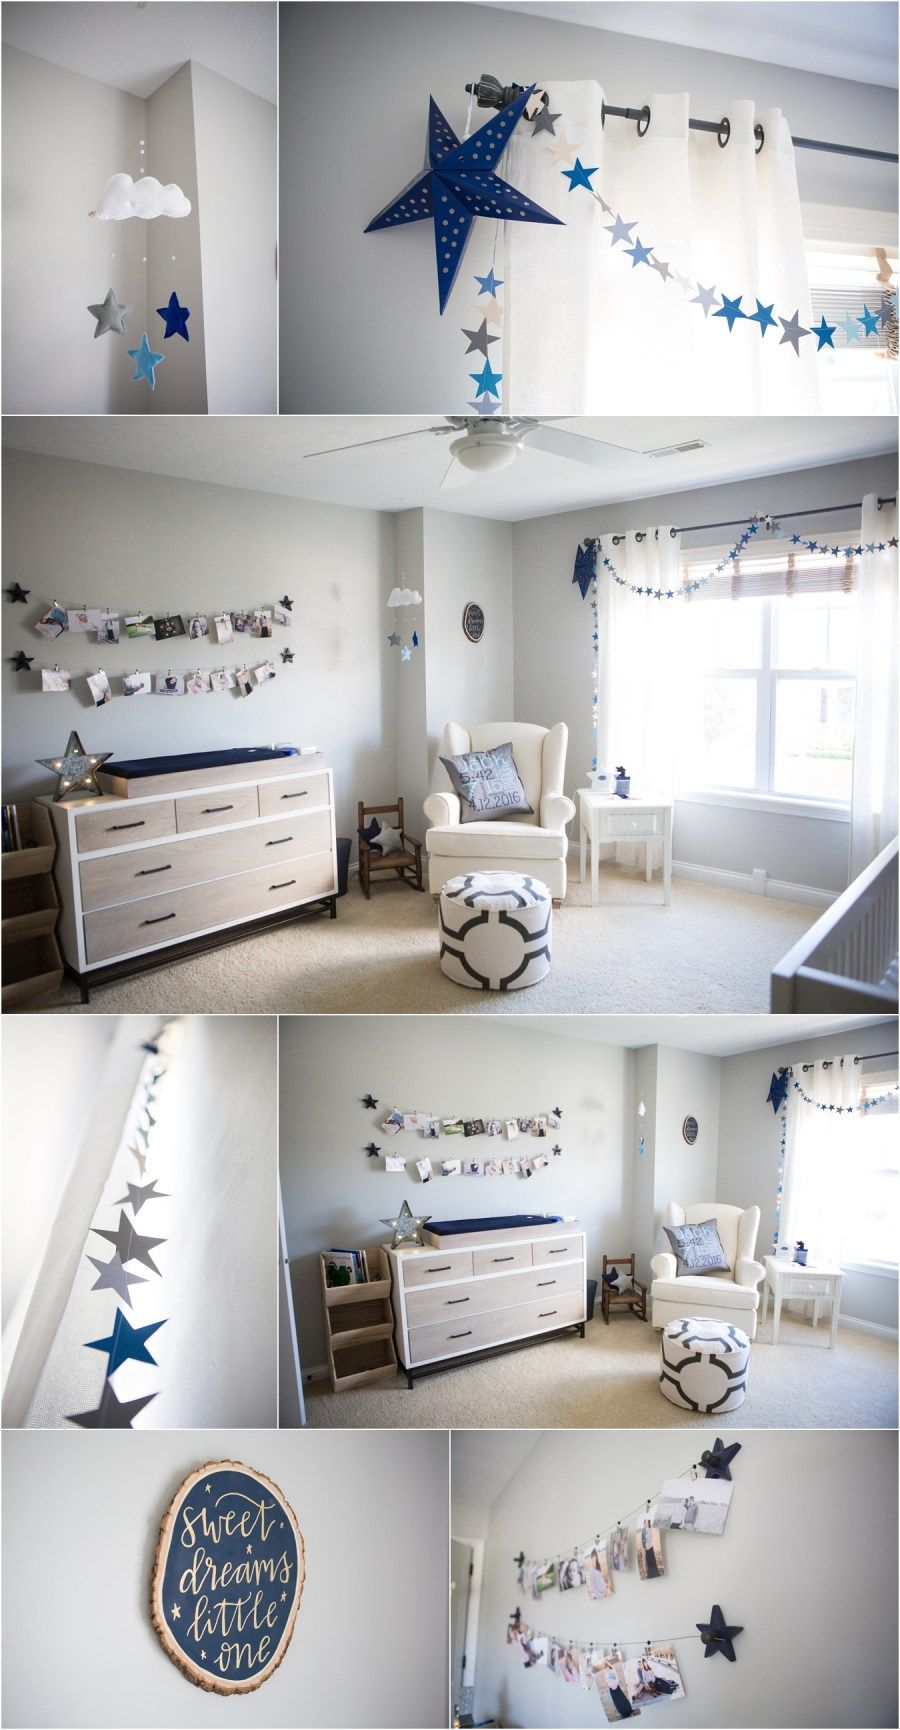 Repose Gray By Sherwin Williams Painted Nursery Perfect Paint Color Star And Moon Themed The Navy Blue Accents It Well